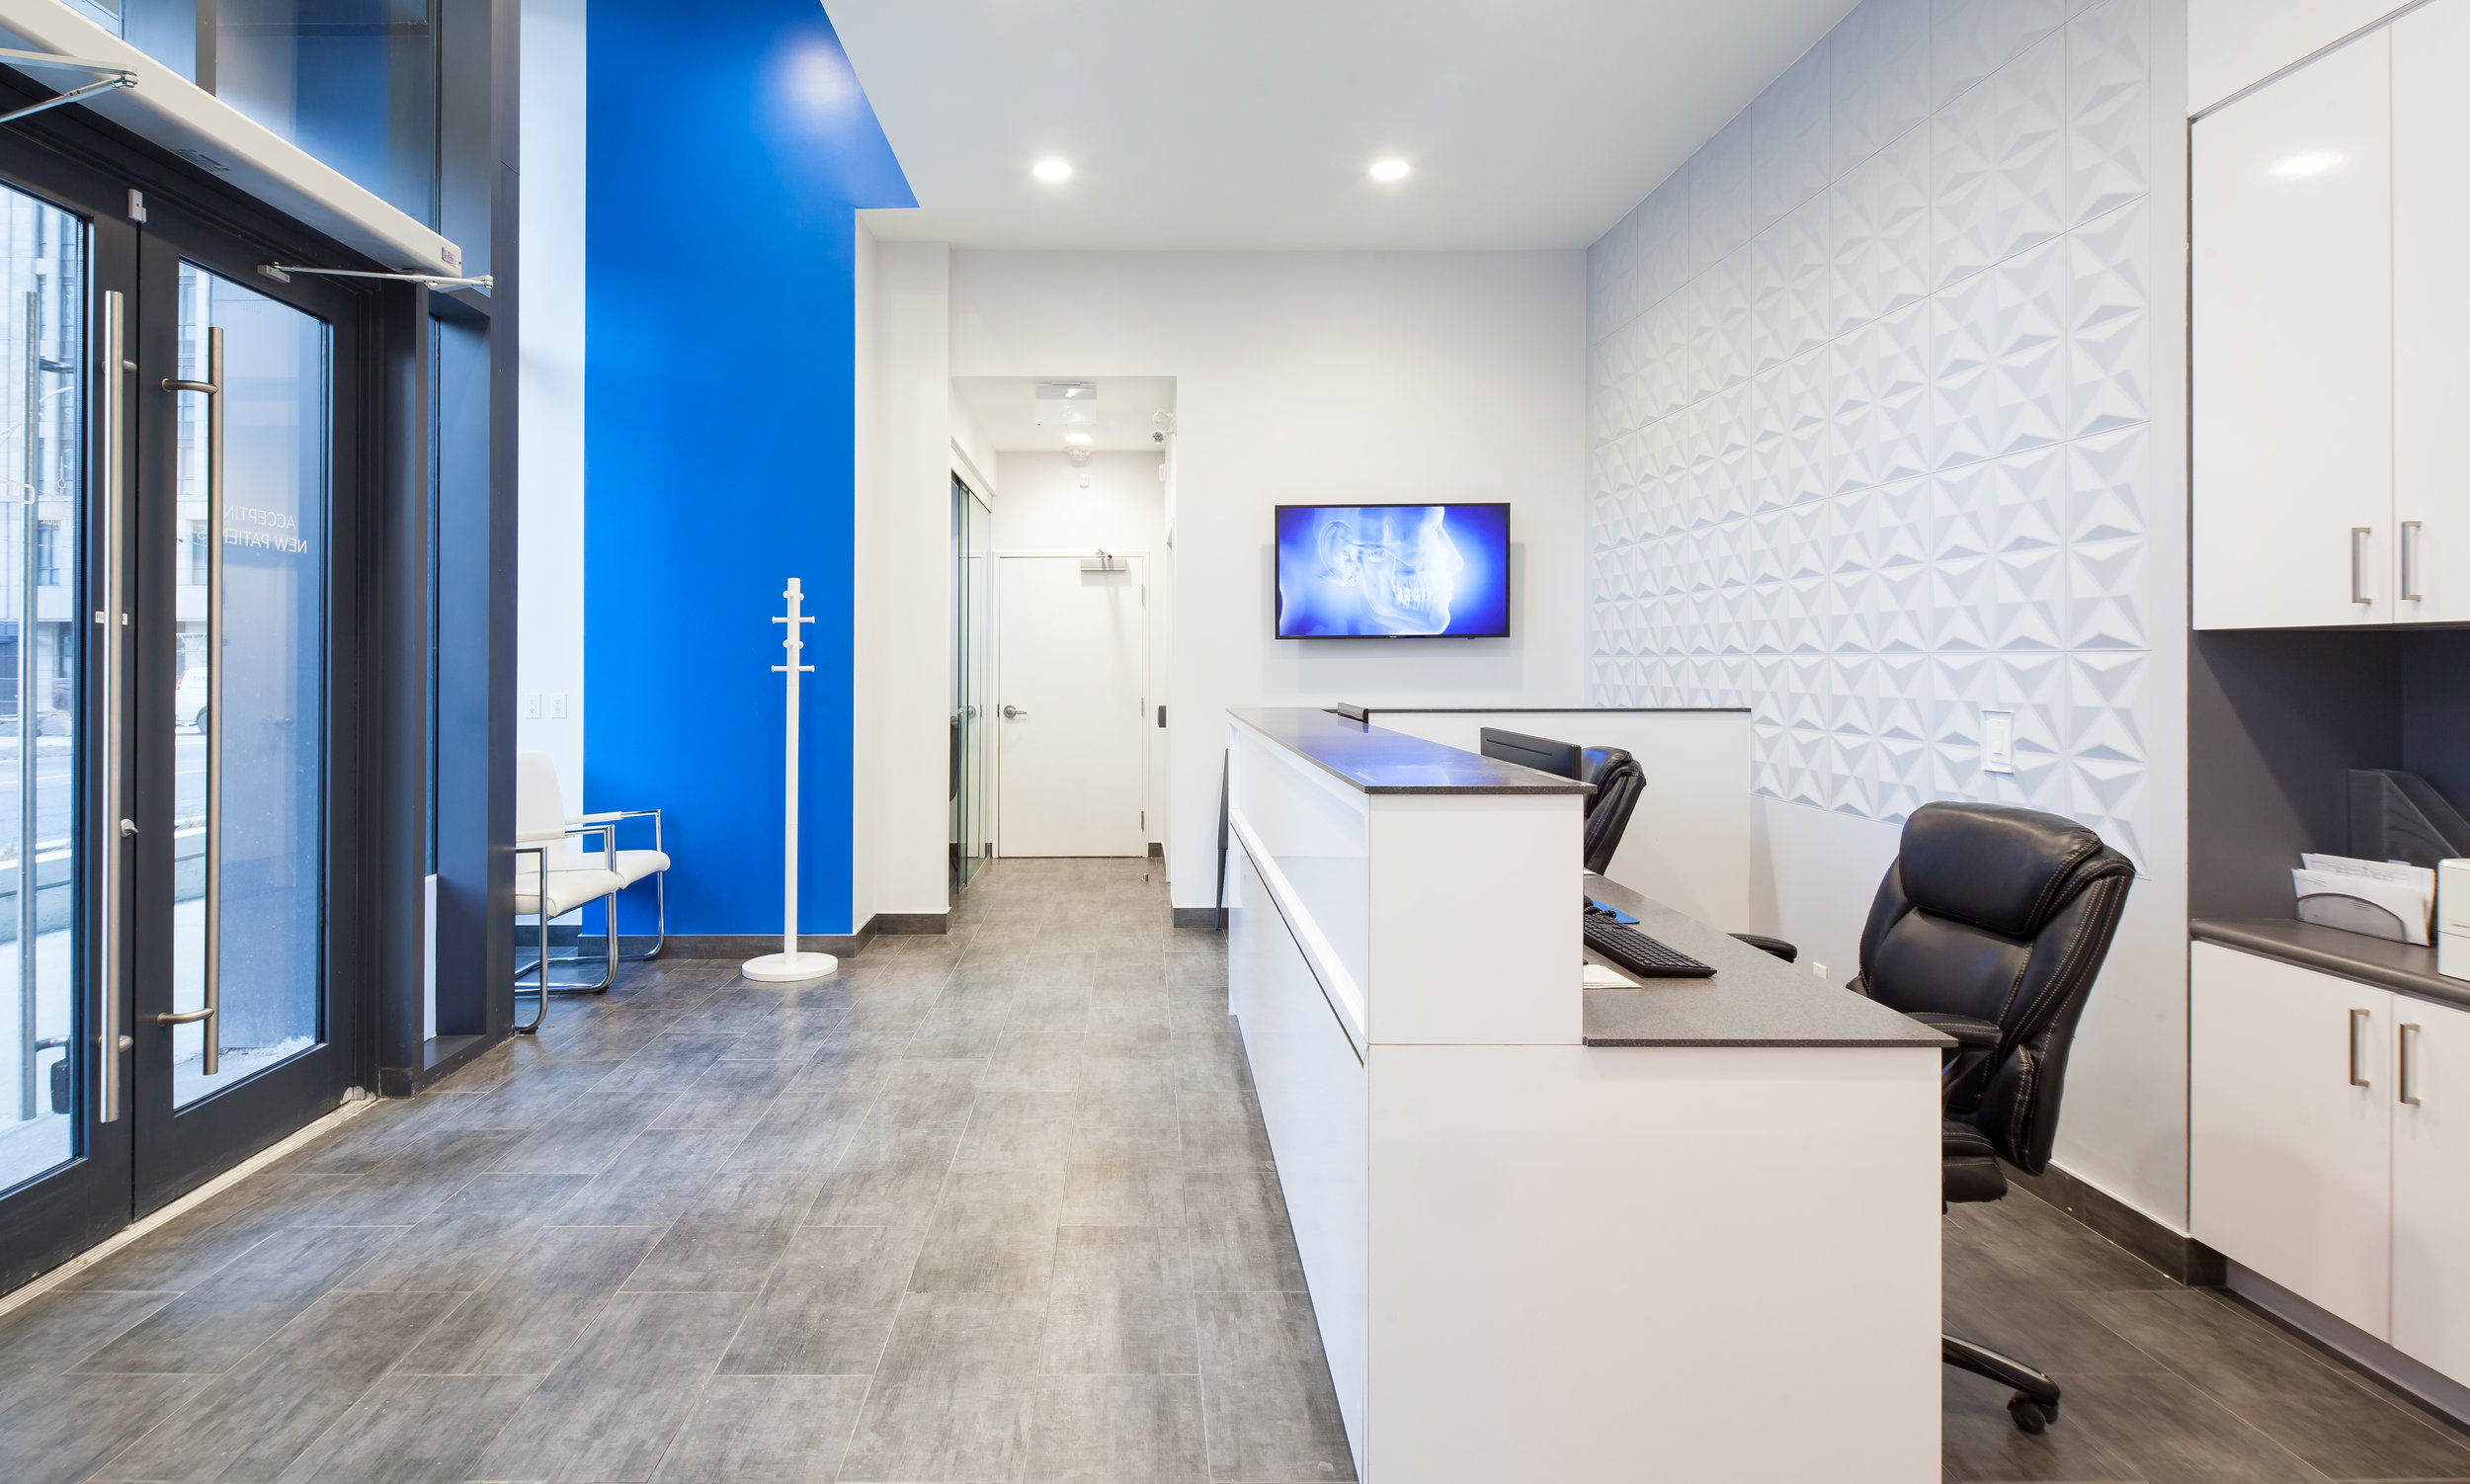 OUR OFFICES - With four convenient locations across the city, each City Dental office goes above and beyond for your comfort. We offer hotel inspired amenities for your comfort, as well as the latest in dental technology to find and treat dental issues faster, and with minimal pain or discomfort.